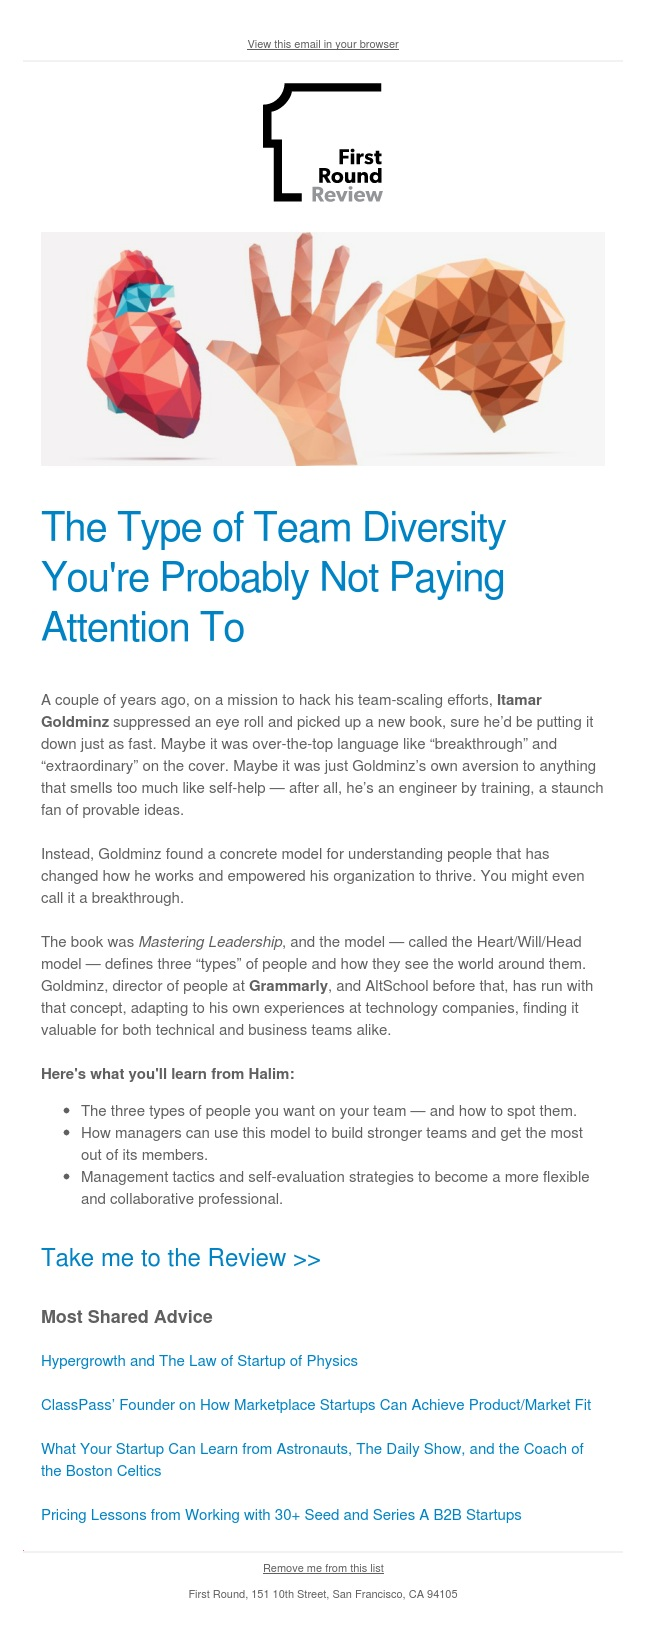 The model that changed how this Head of People views teams